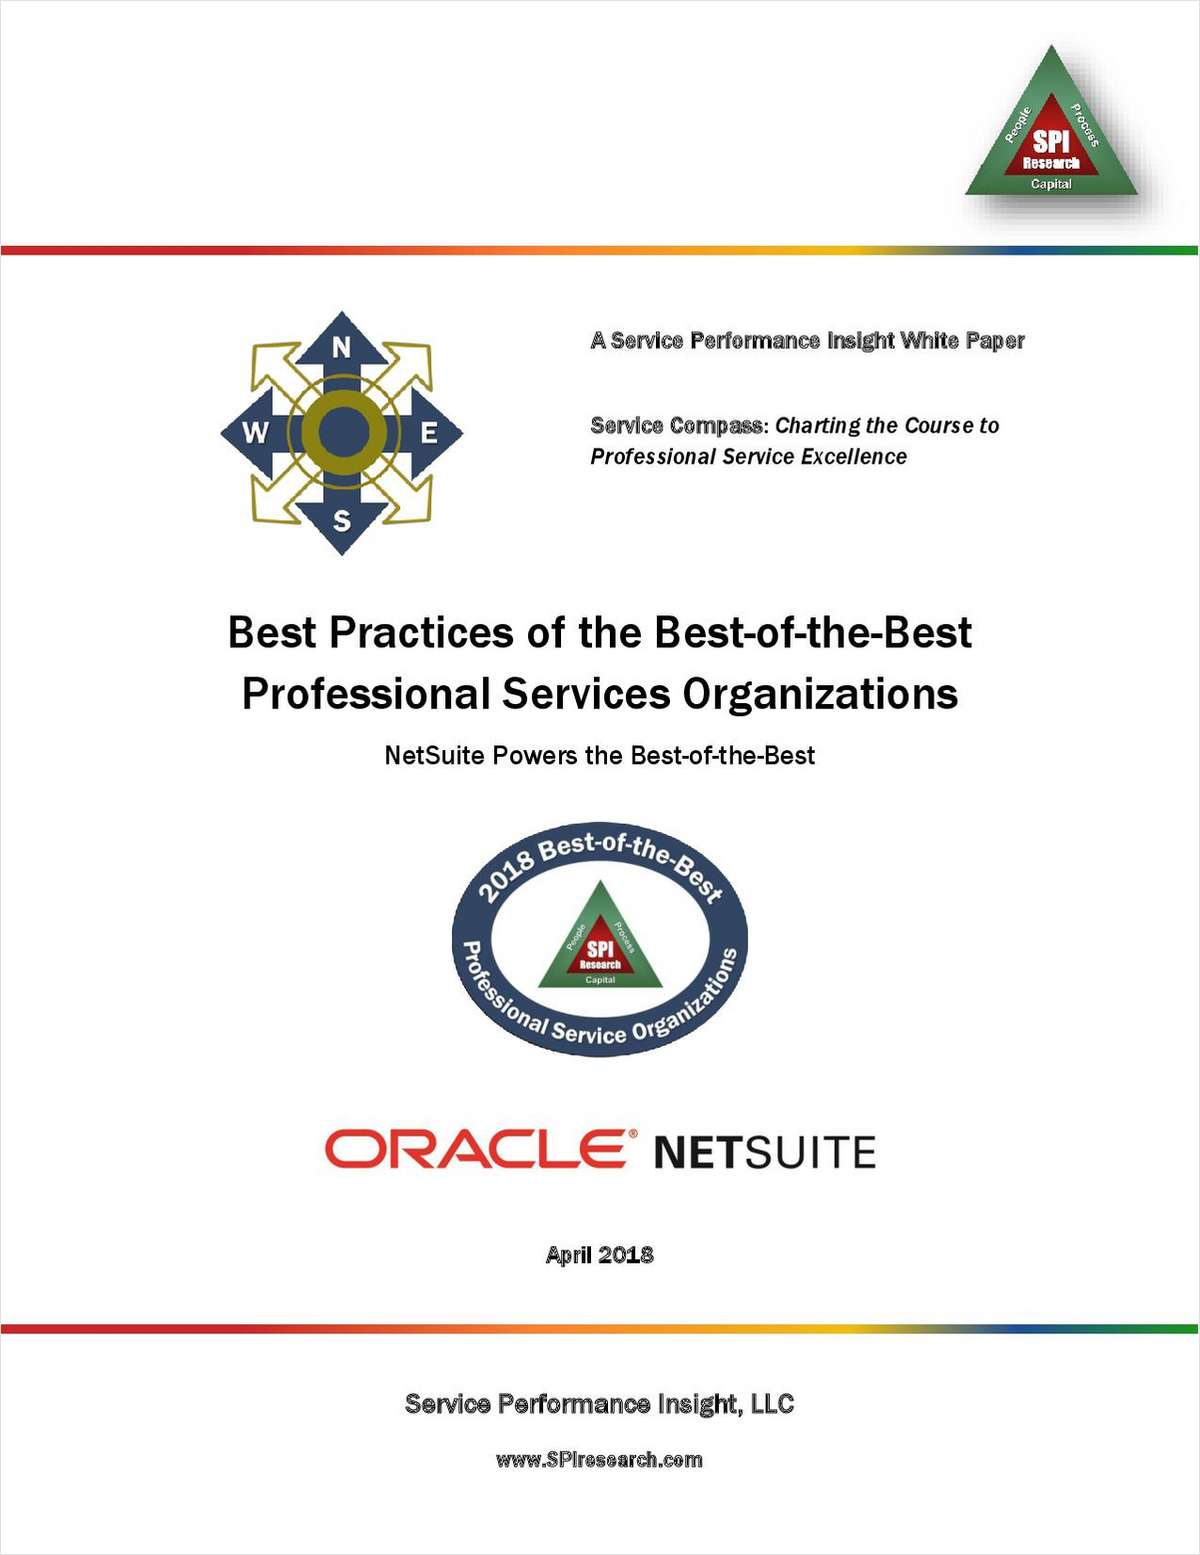 Best Practices of PS Organizations